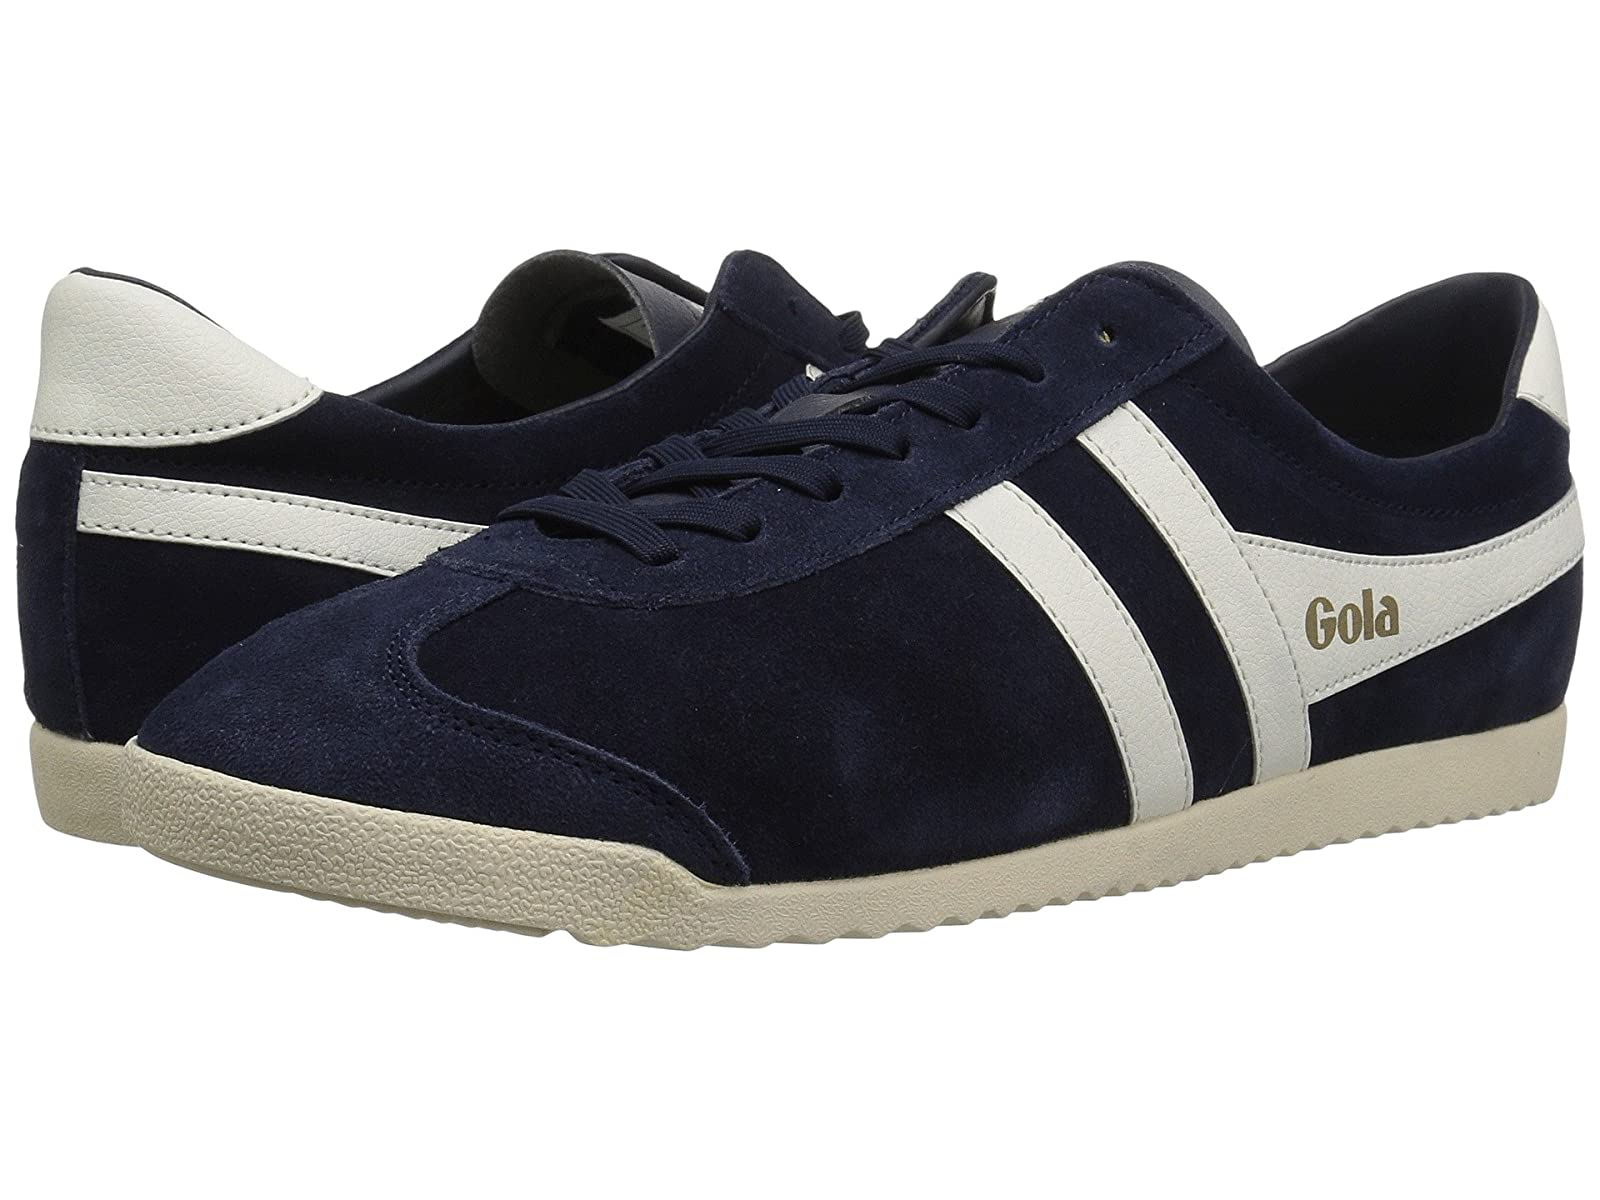 Gola Bullet SuedeCheap and distinctive eye-catching shoes